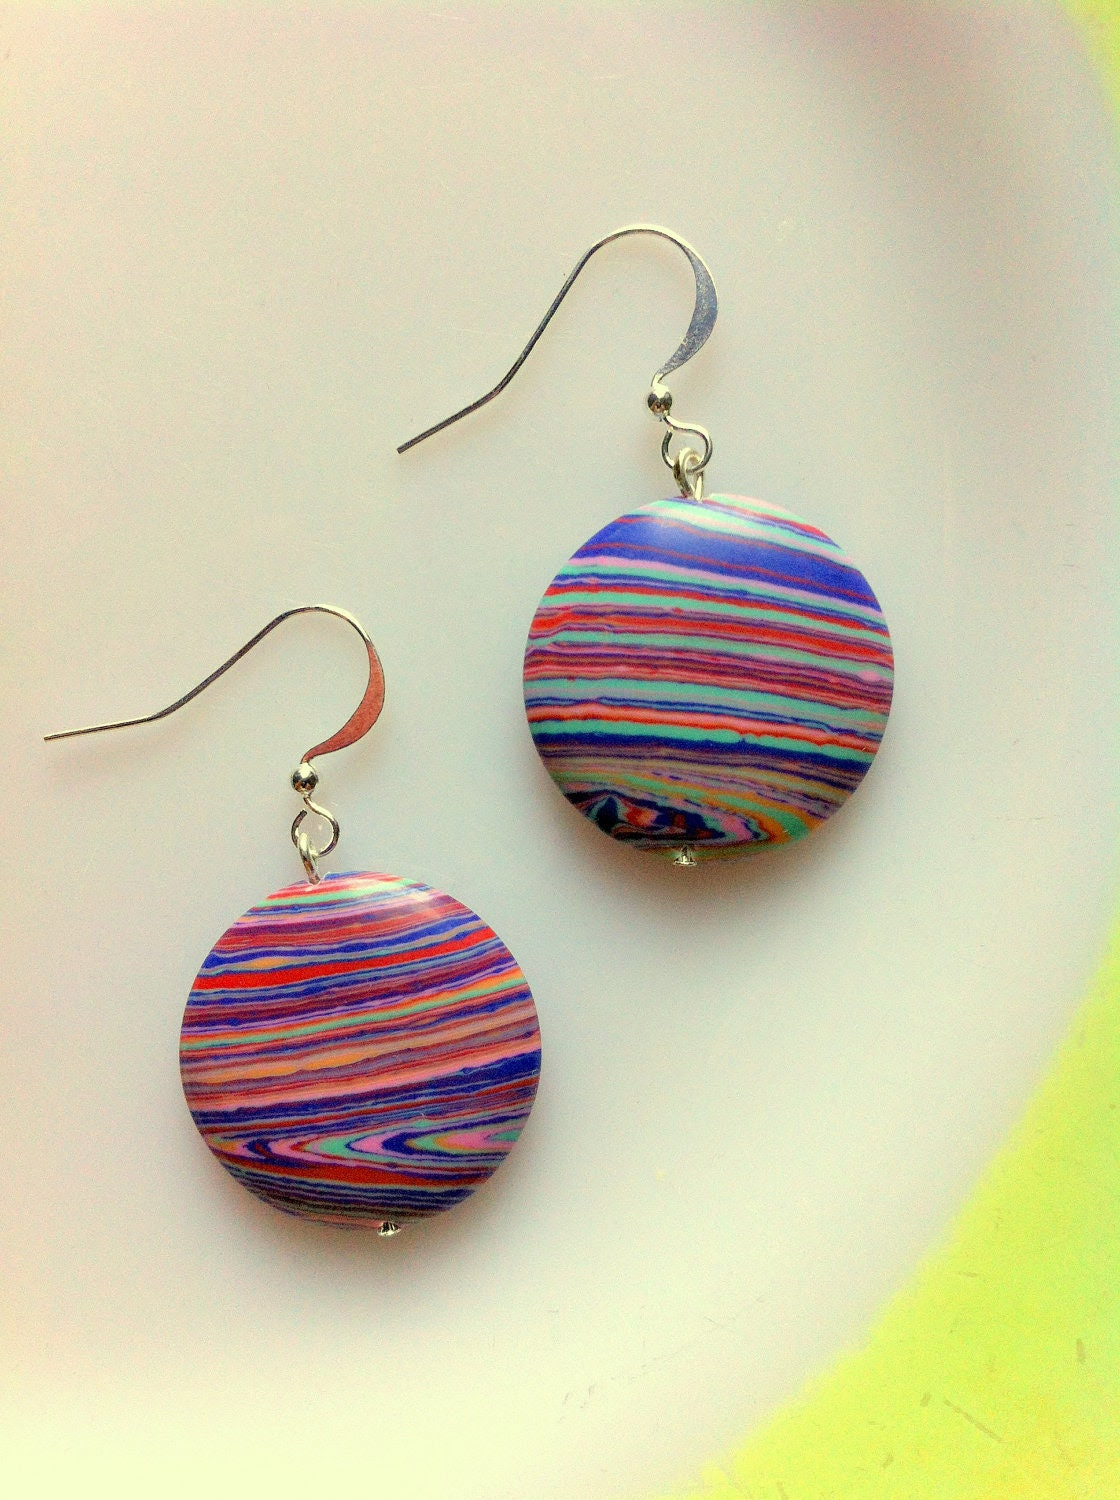 Multicolored Striped Earrings with Pink, Purple, Orange, and Green Hues, Silver-Plated Findings - Colorful - LassieJaneJewelry